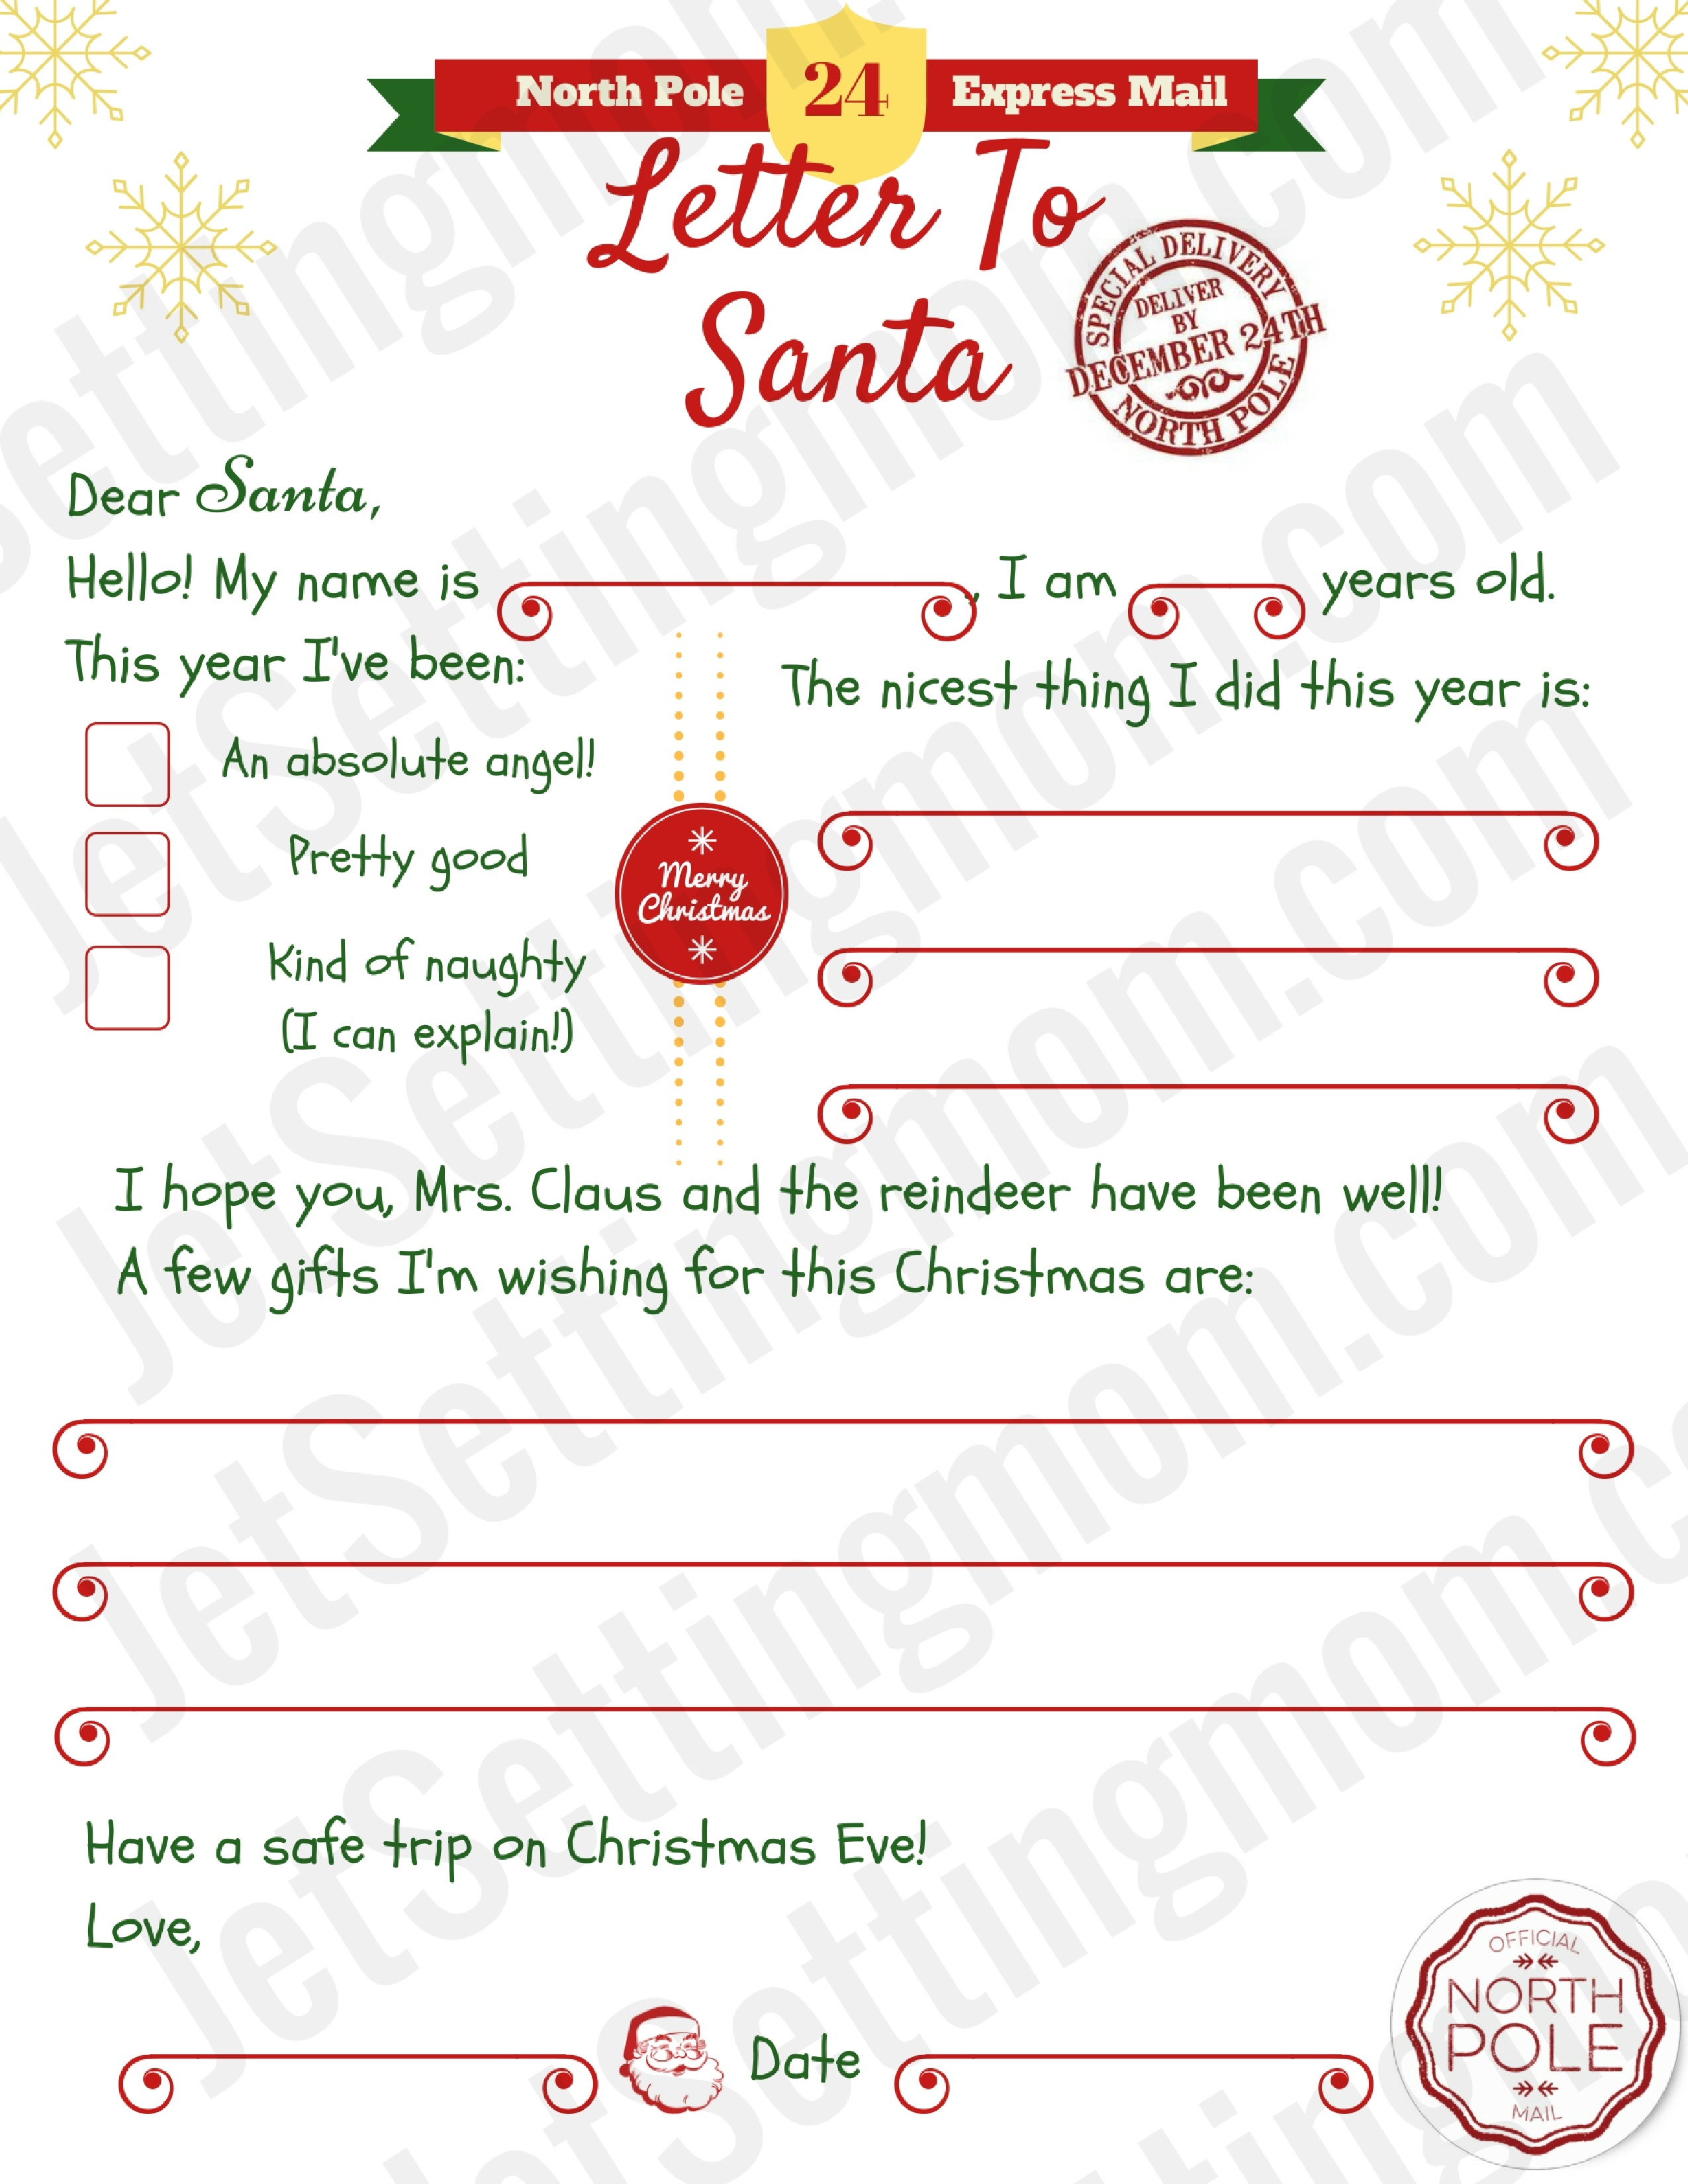 Free Printable Letter To Santa Template - Writing To Santa Made Easy! - Free Printable Letters From Santa Claus